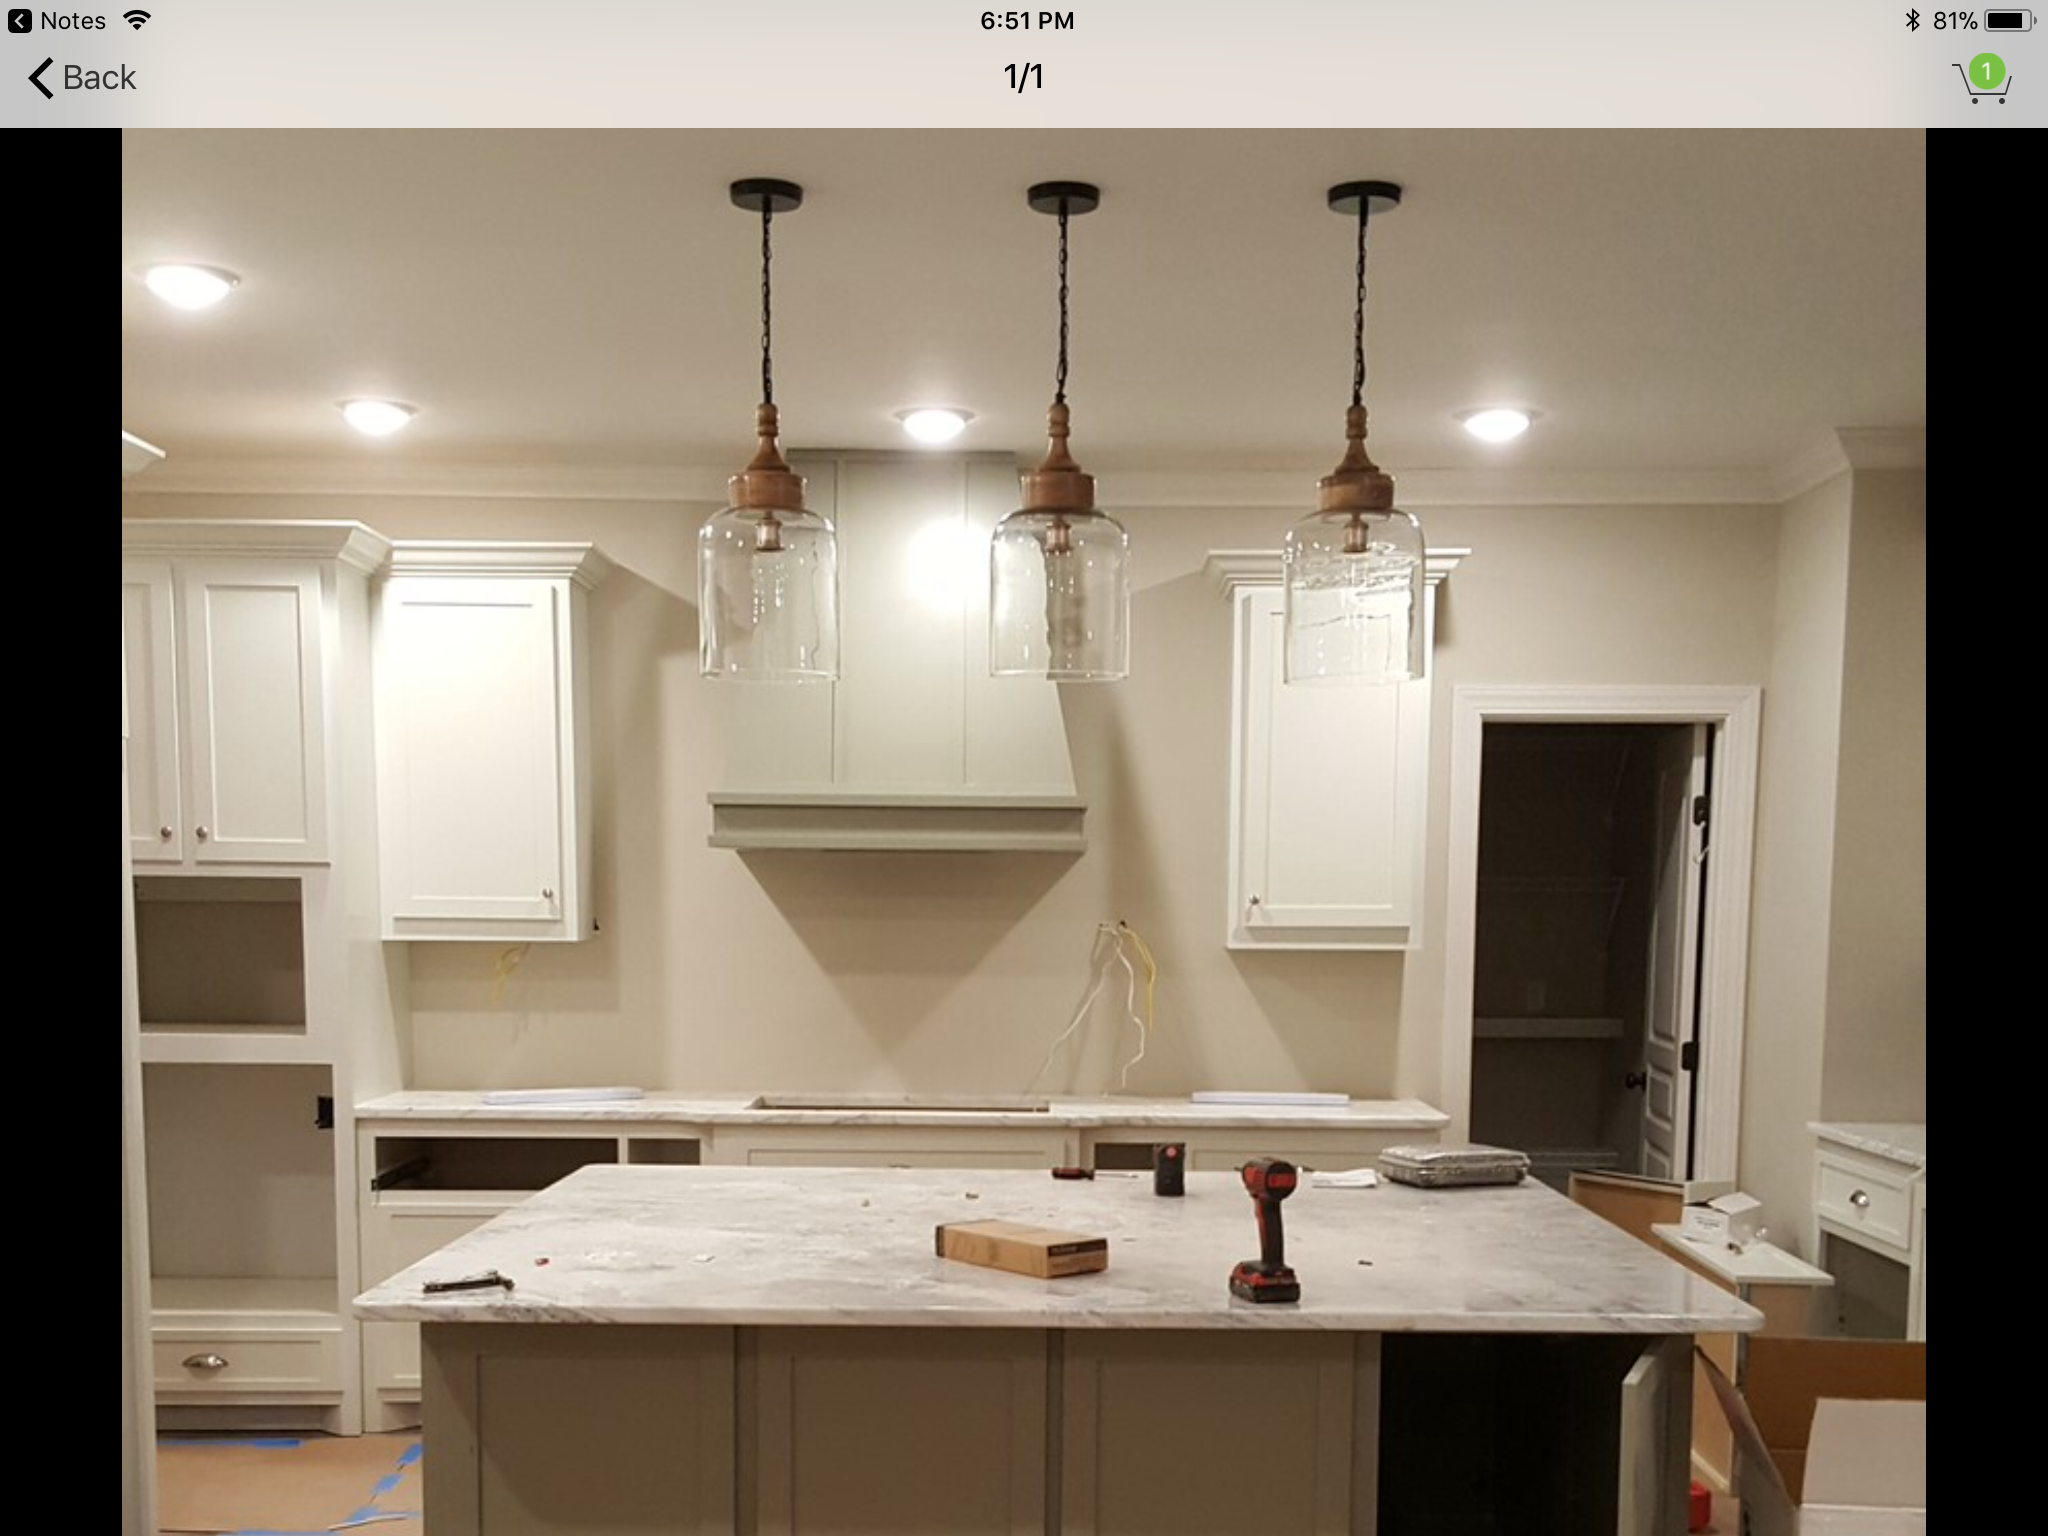 10 inch light over 6ft island Kitchen Pinterest